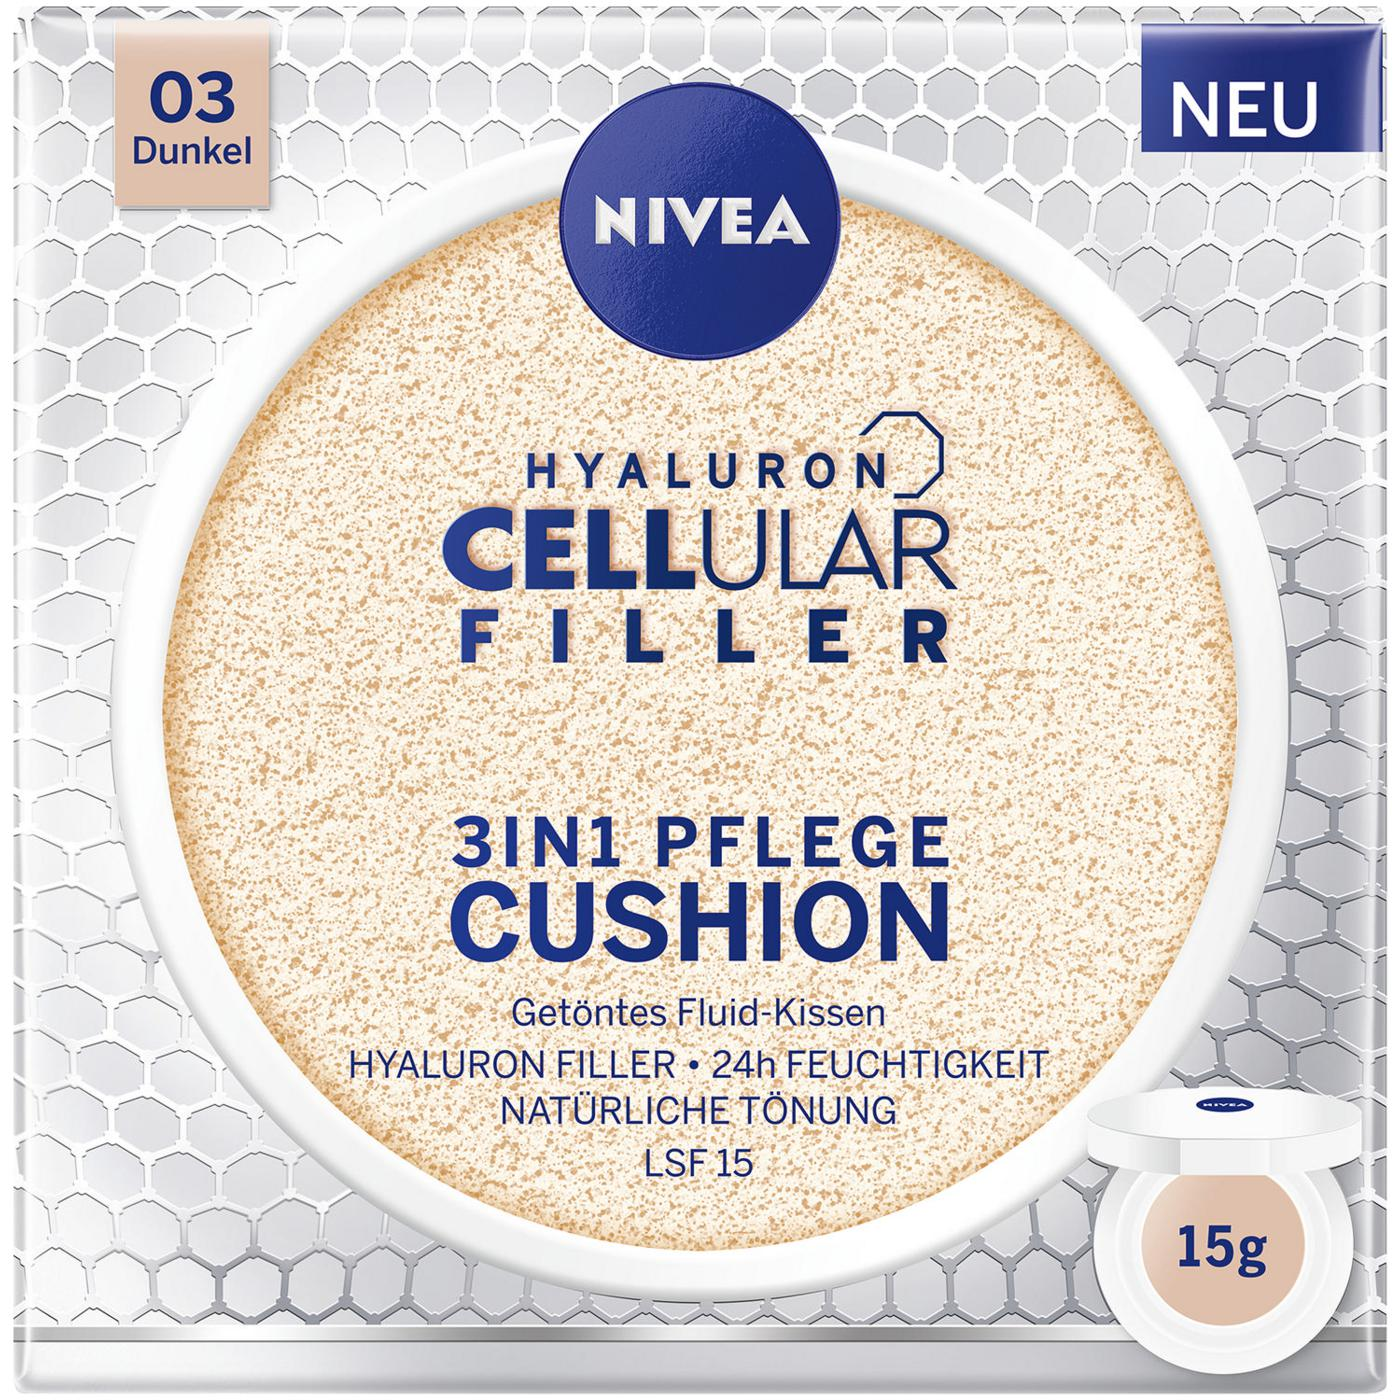 Nivea Hyaluron Cellular Filler 3in1 Pflege Cushion Getontes Fluid